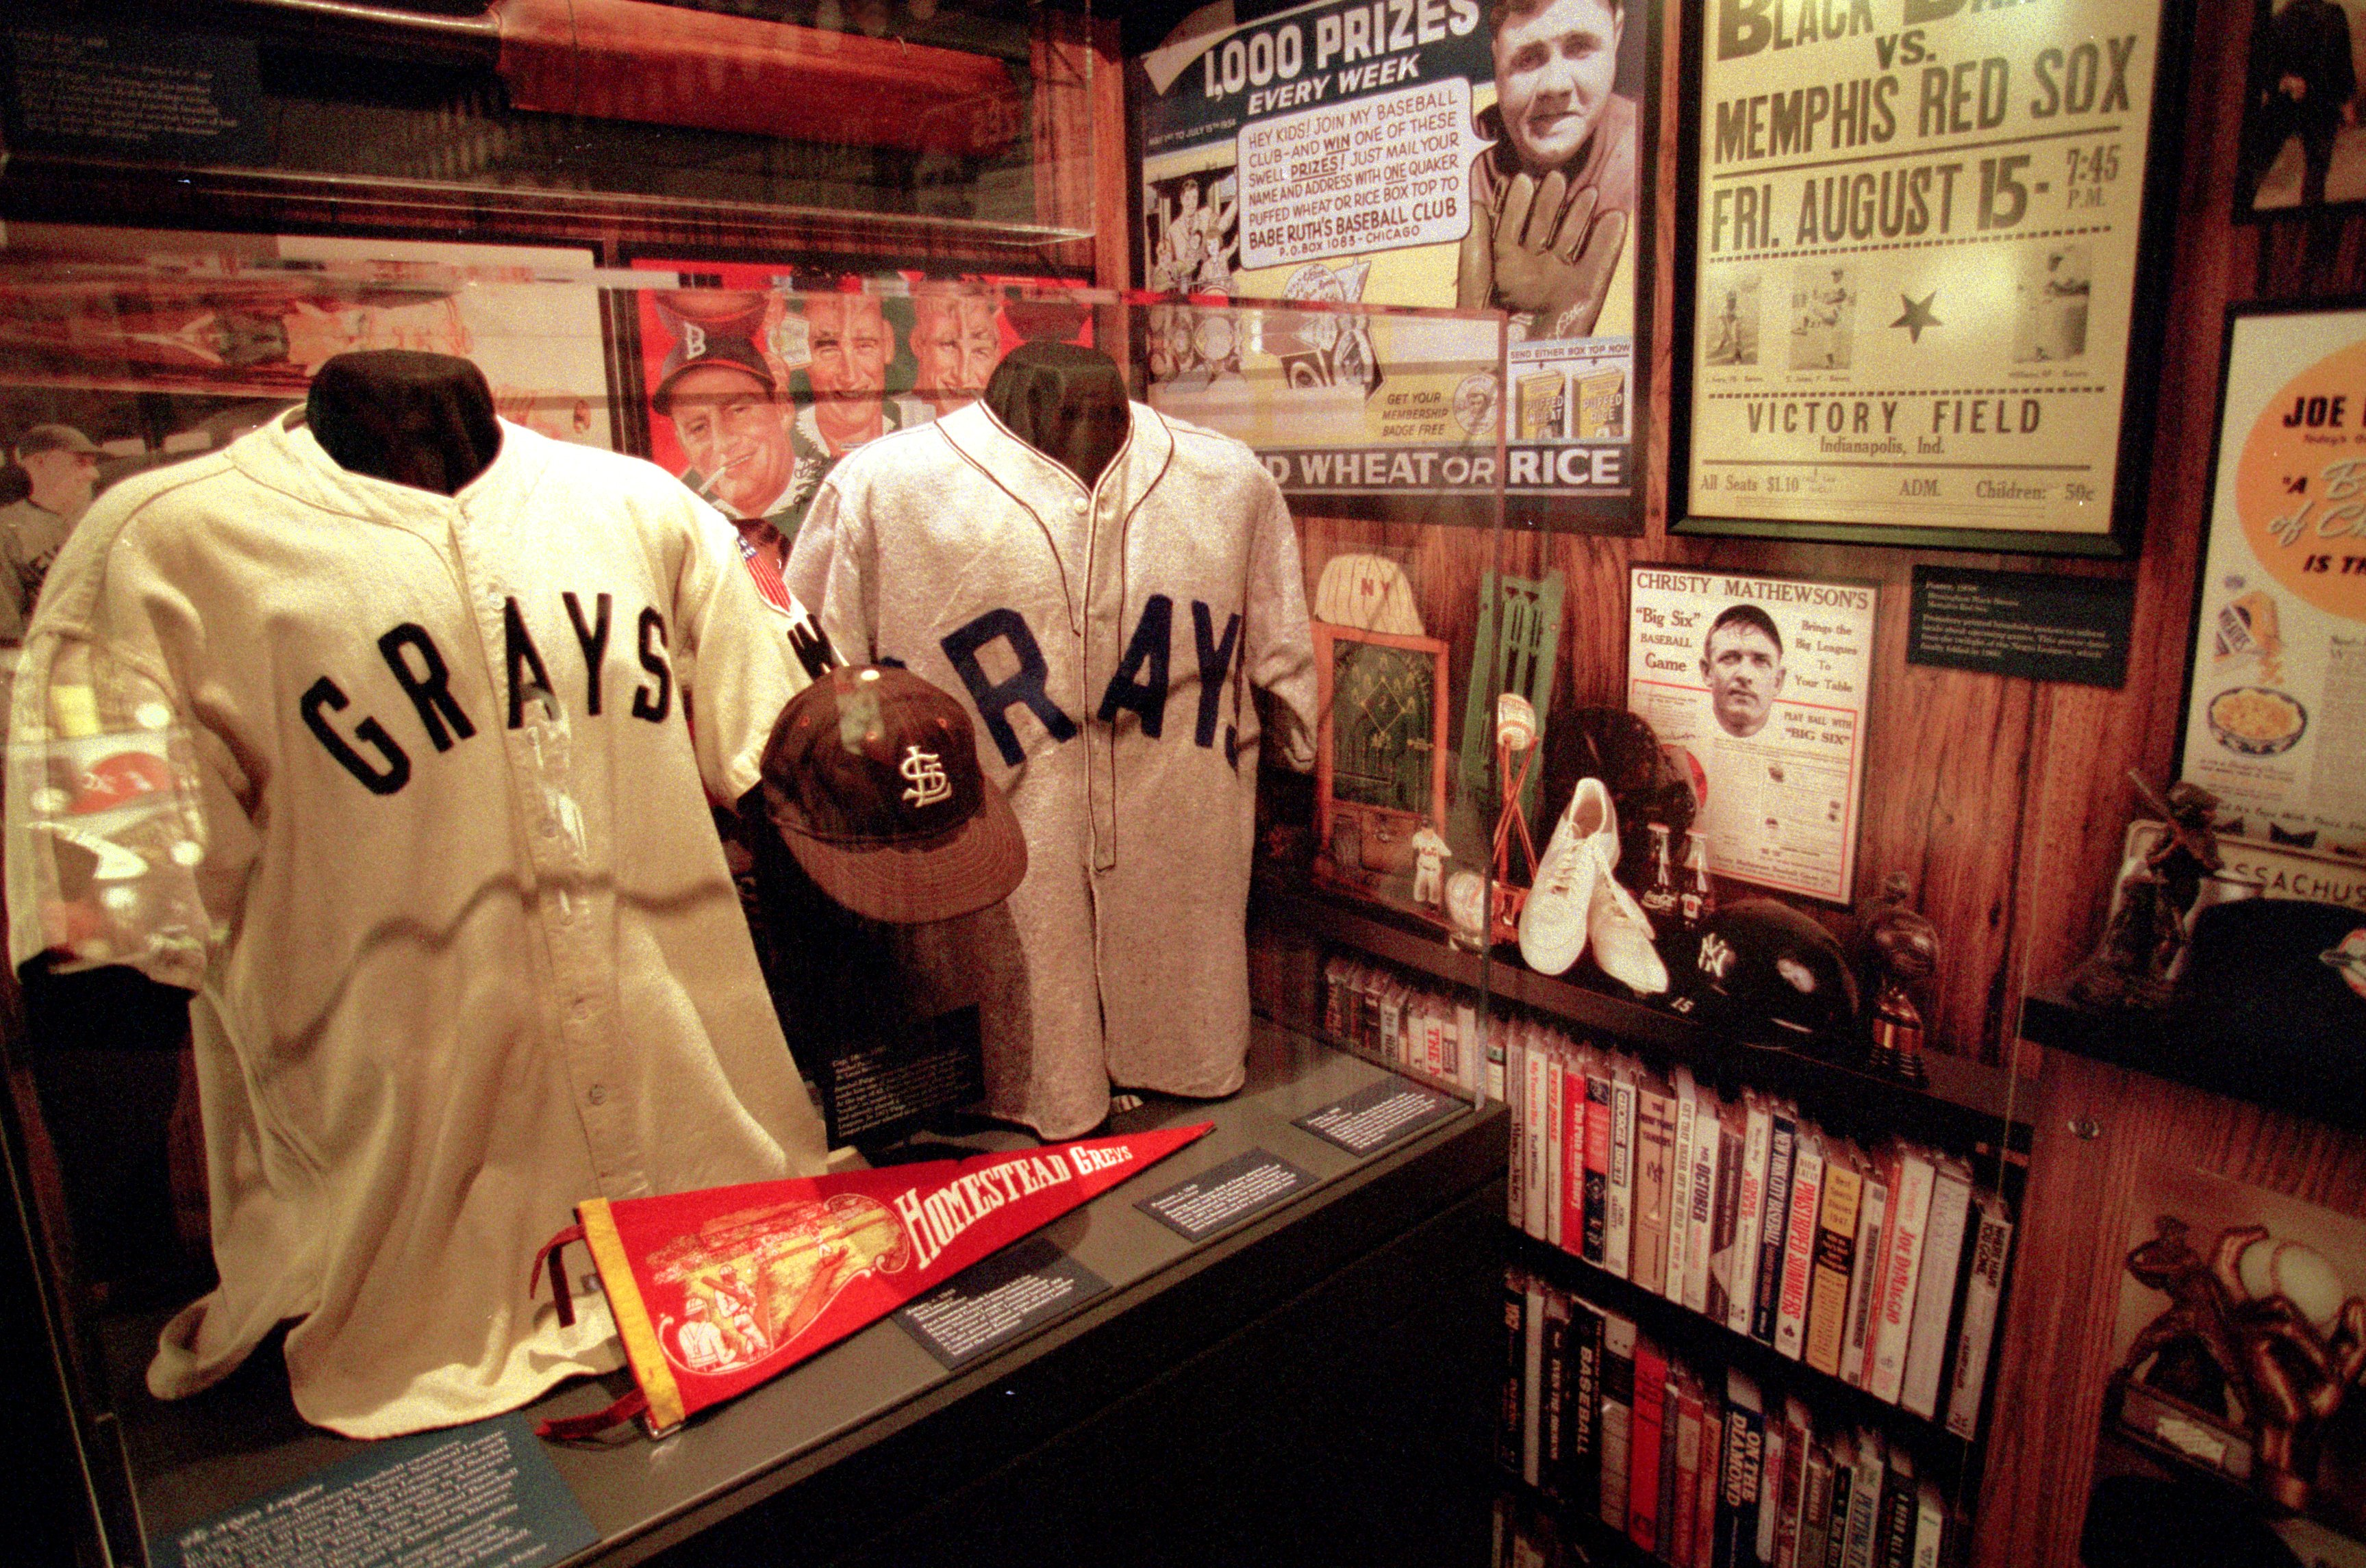 A general view of some classic memorabilia at the Baseball Hall of Fame in Cooperstown. (Ezra O. Shaw /Allsport, Getty Images)